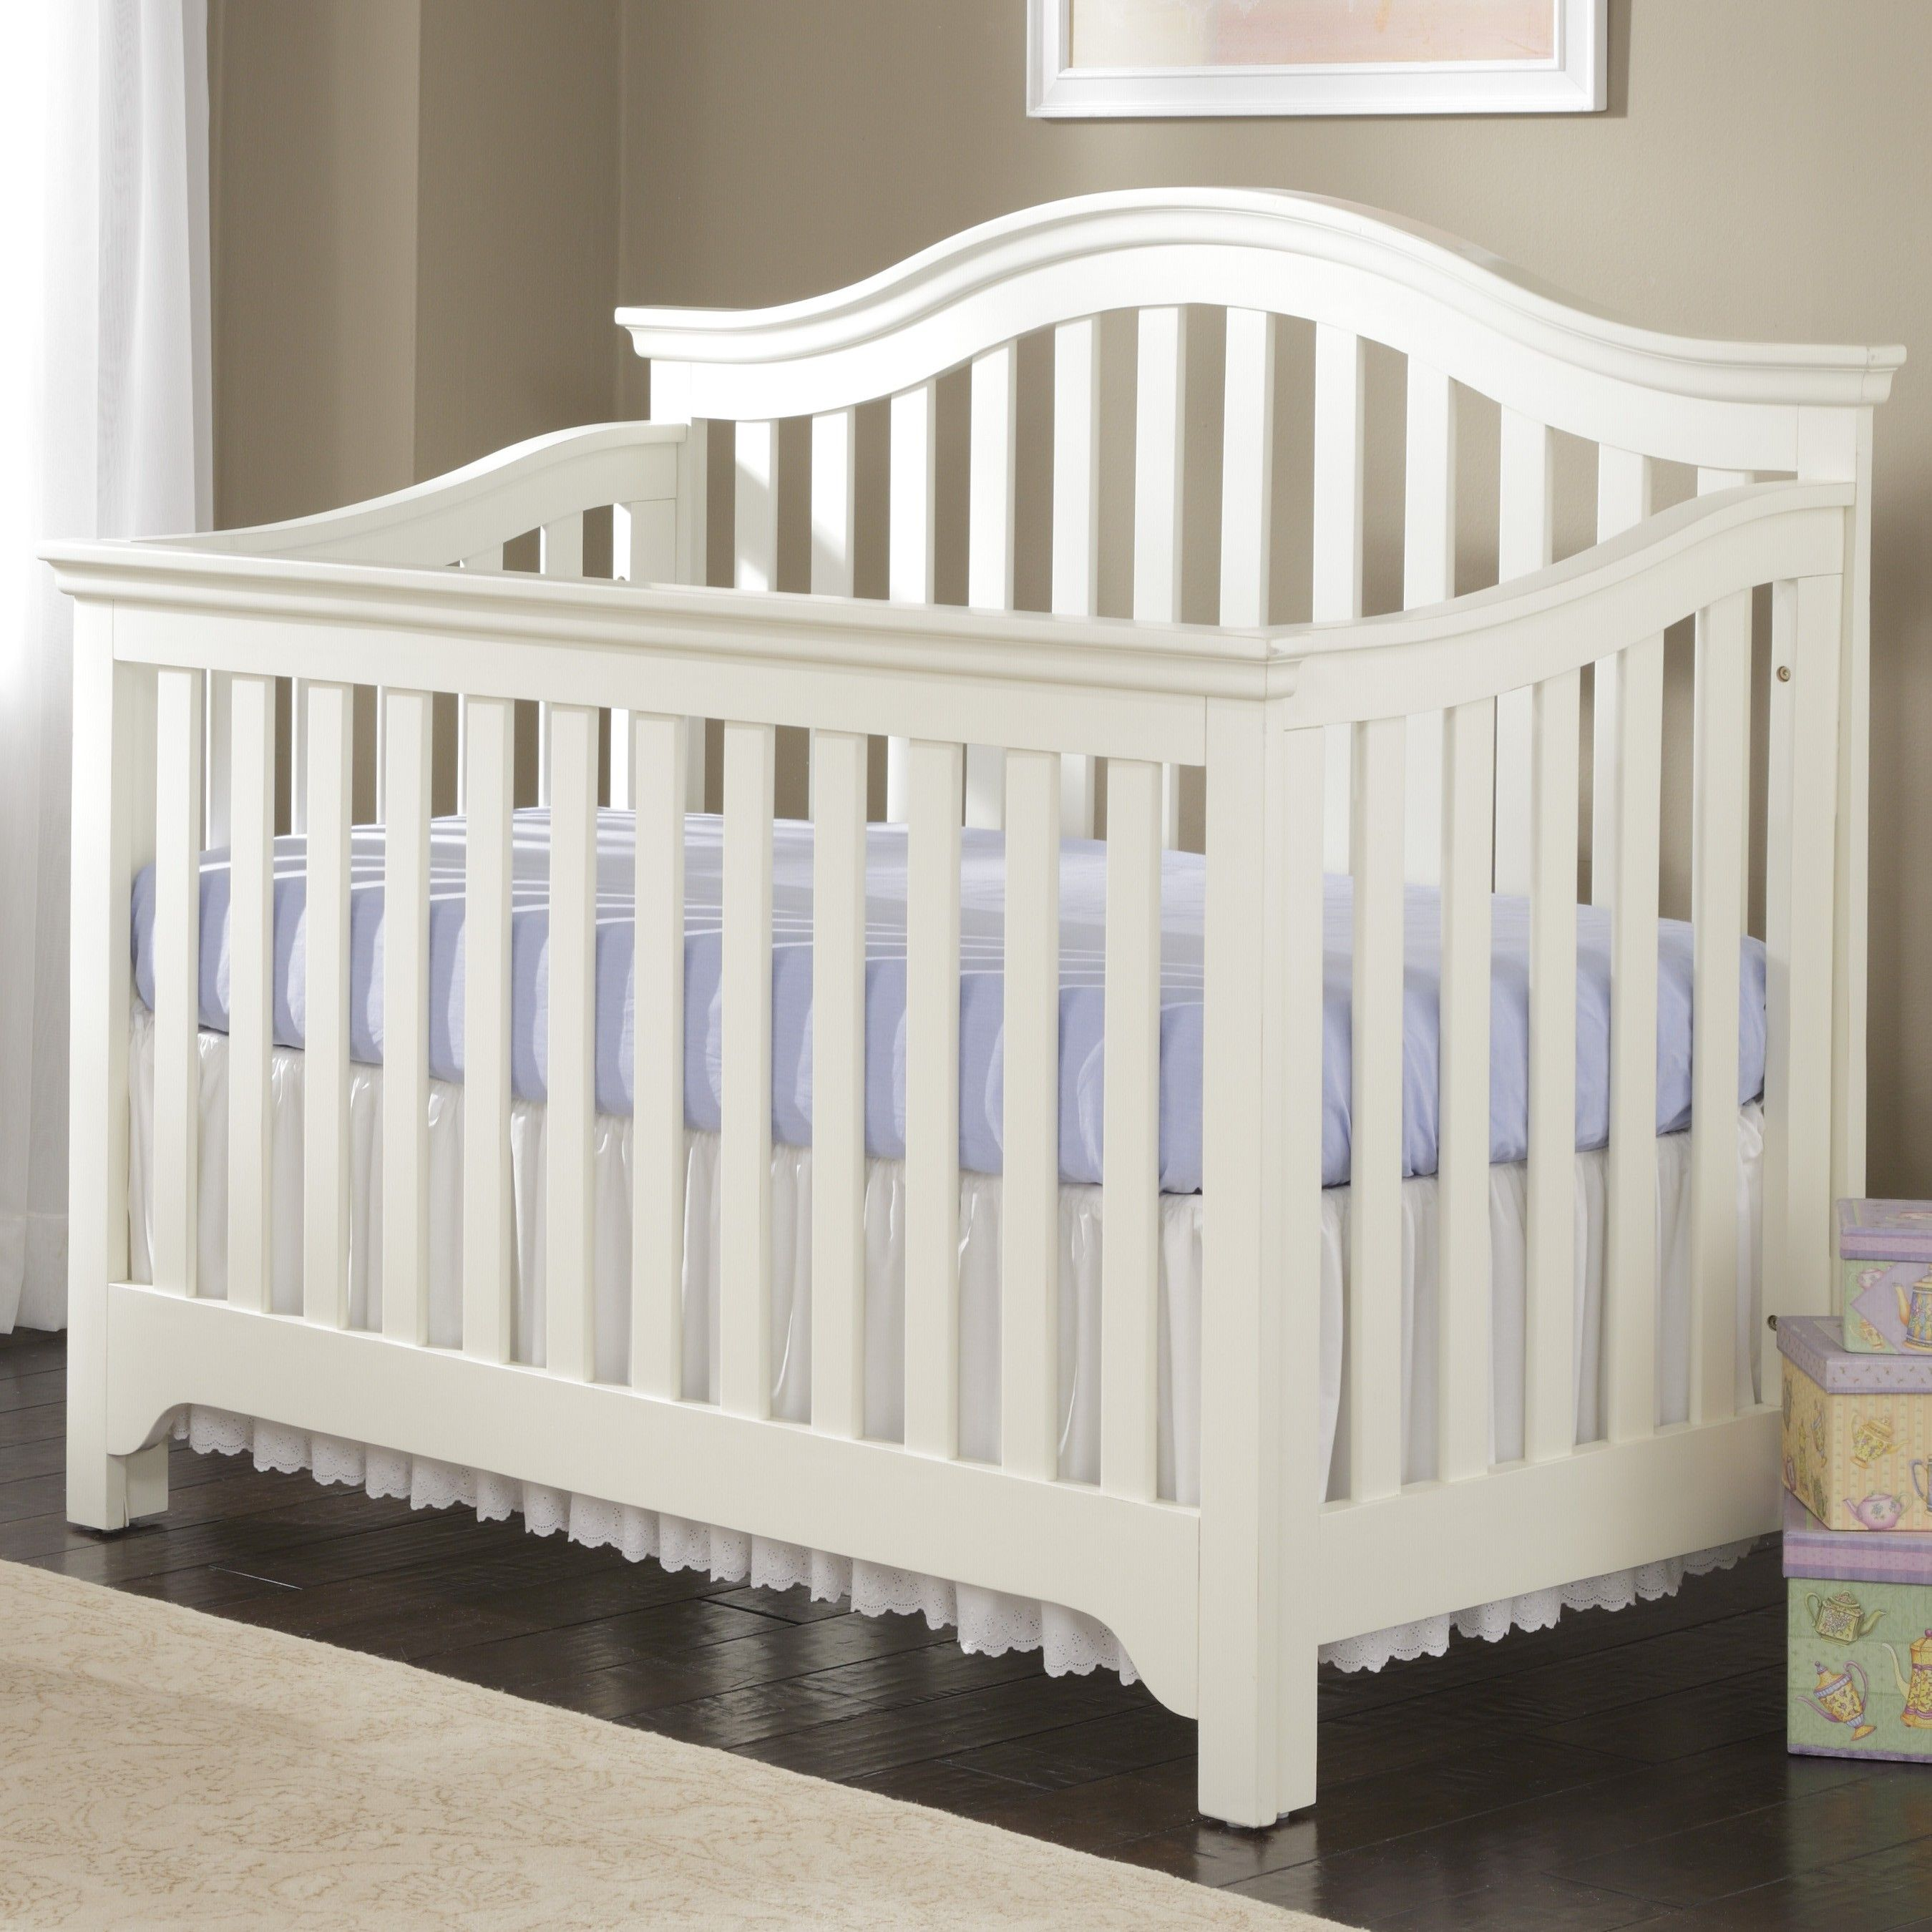 A White Crib Your Child Safety White Baby Cribs Cribs